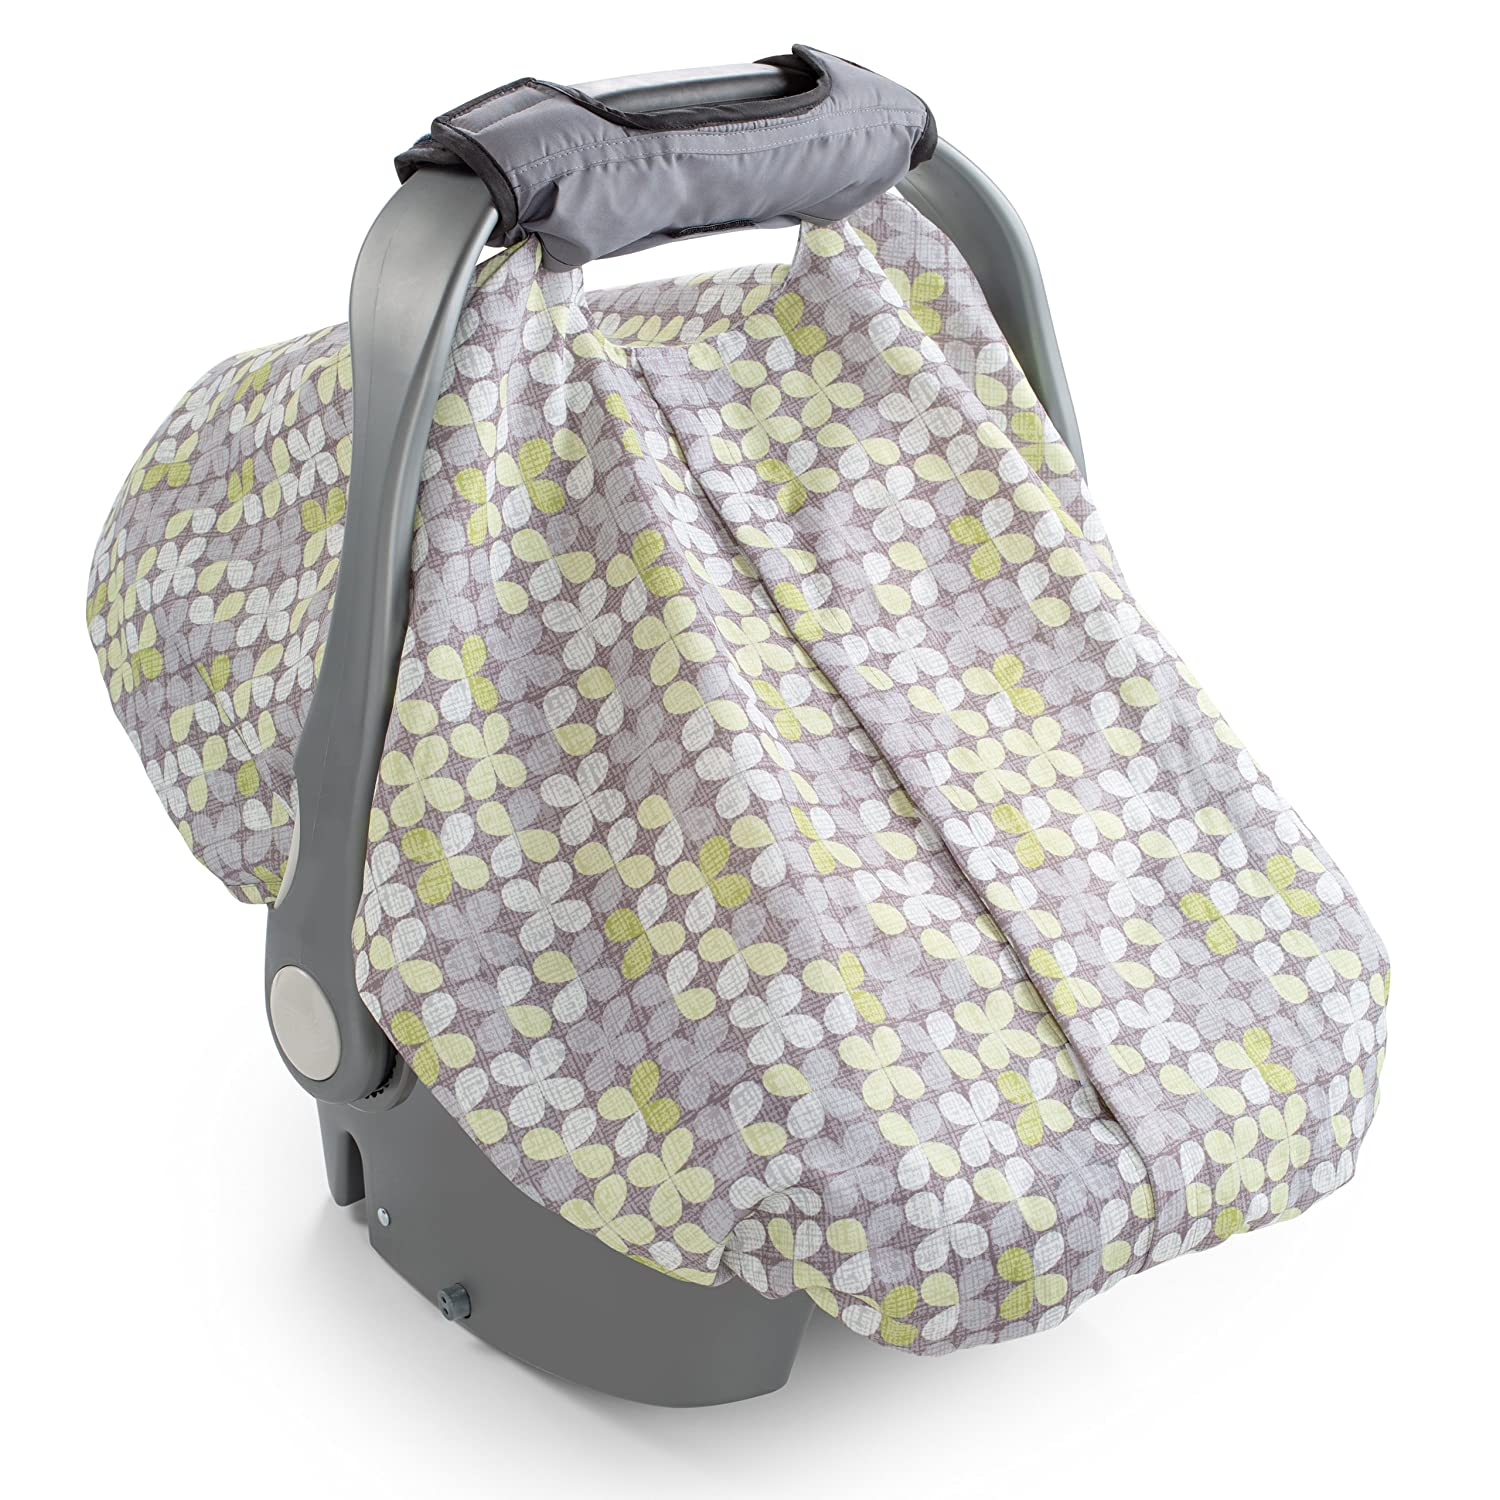 Amazon.com Summer Infant 2-in-1 Carry u0026 Cover Infant Car Seat Cover Clover Baby  sc 1 st  Amazon.com & Amazon.com: Summer Infant 2-in-1 Carry u0026 Cover Infant Car Seat ...